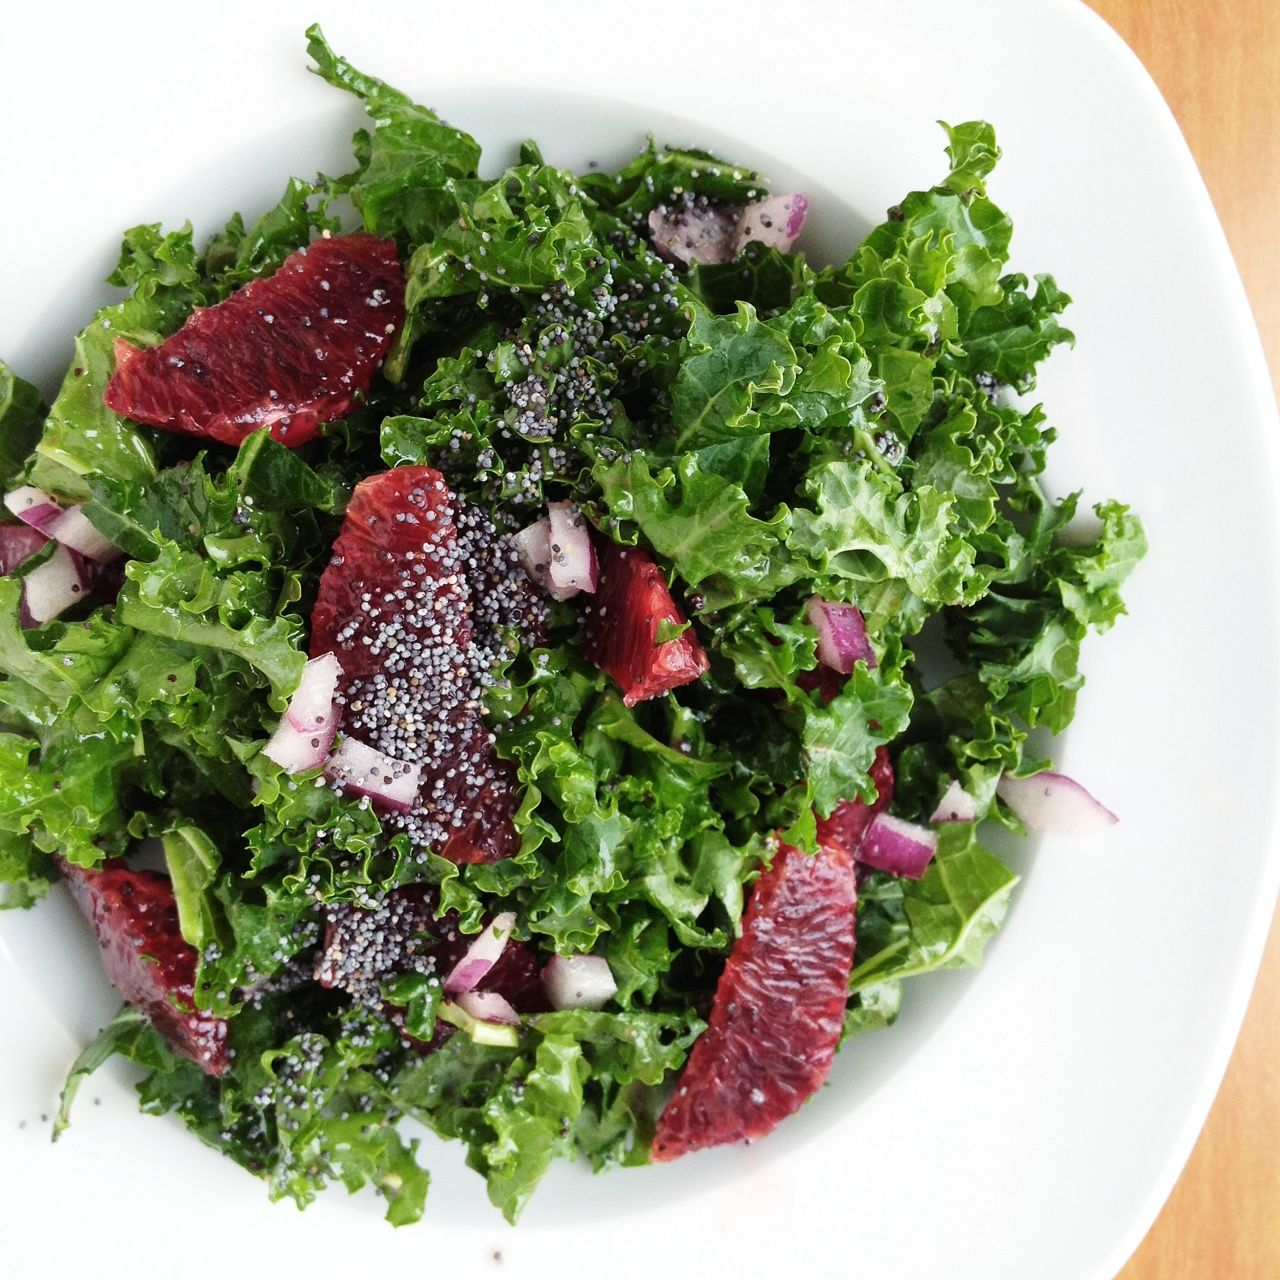 Berry And Bacon Kale Salad With Blackberry Jam Vinaigrette Recipes ...